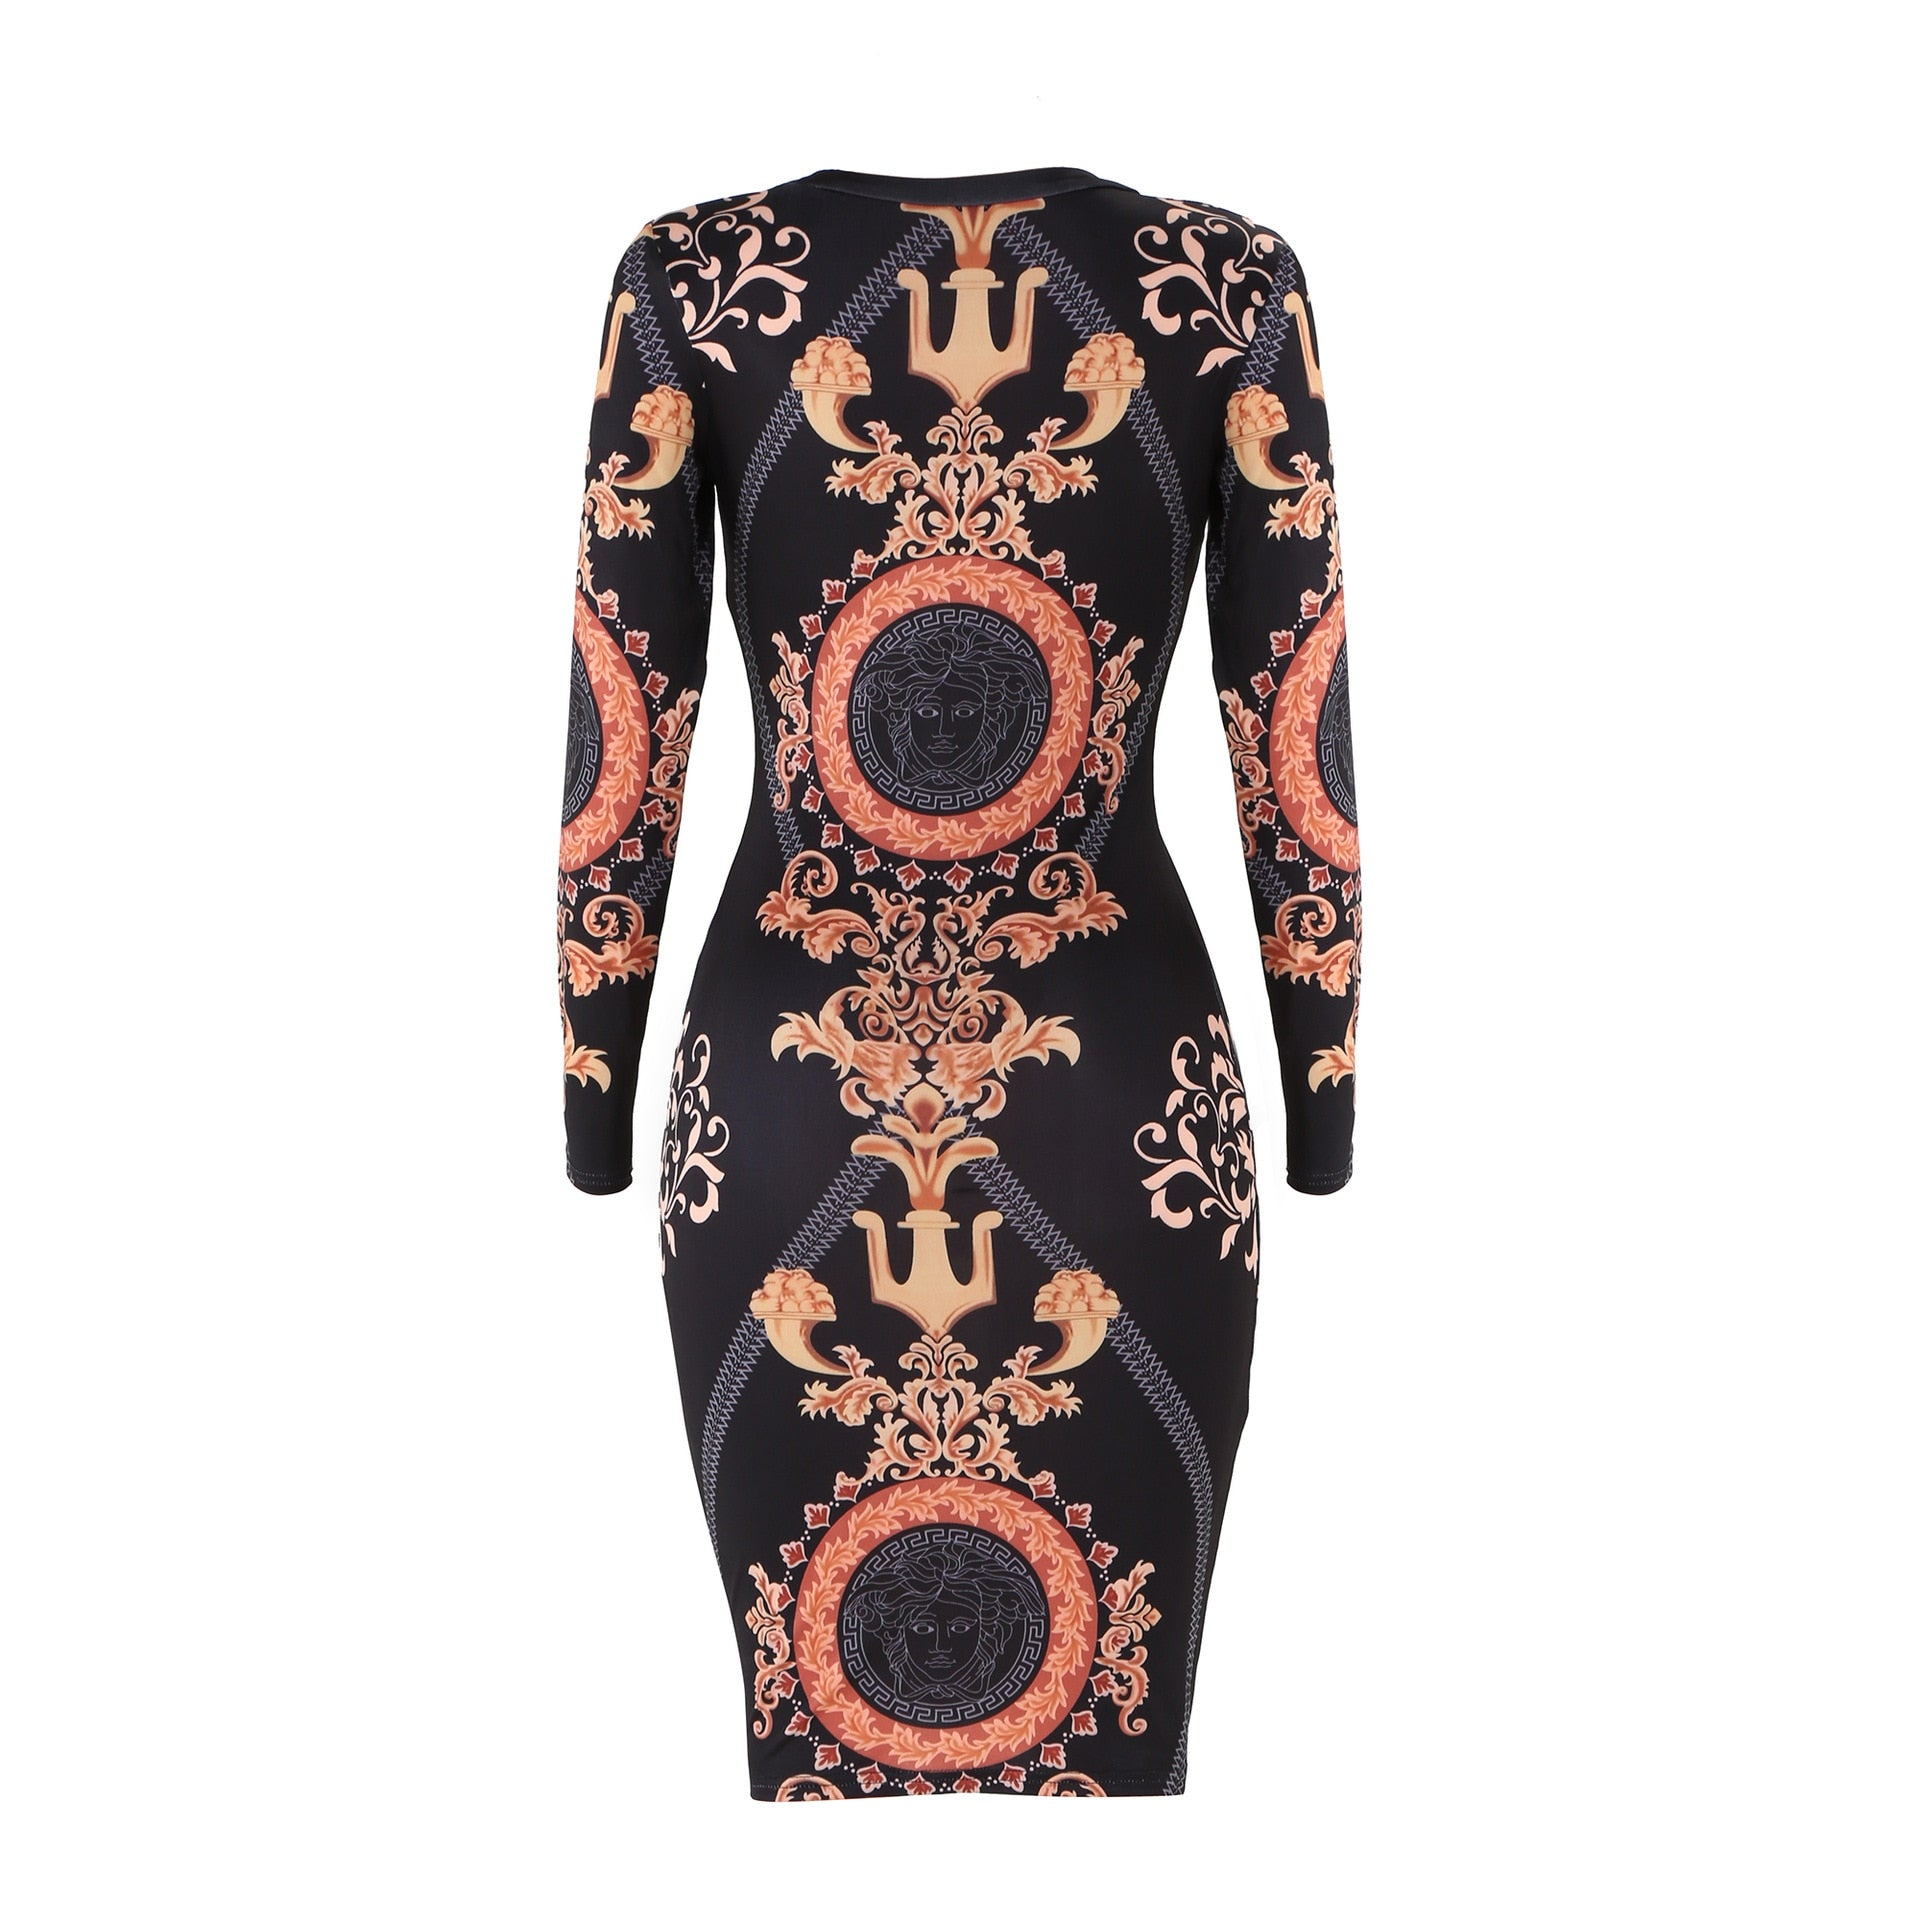 f62c6b1f4f0c5 2019 Women Dress Party Night Club Vintage dress Long Sleeve Print Hot Sale  Wrap Hip Bodycon Cocktail Bandage dress Sexy Dresses